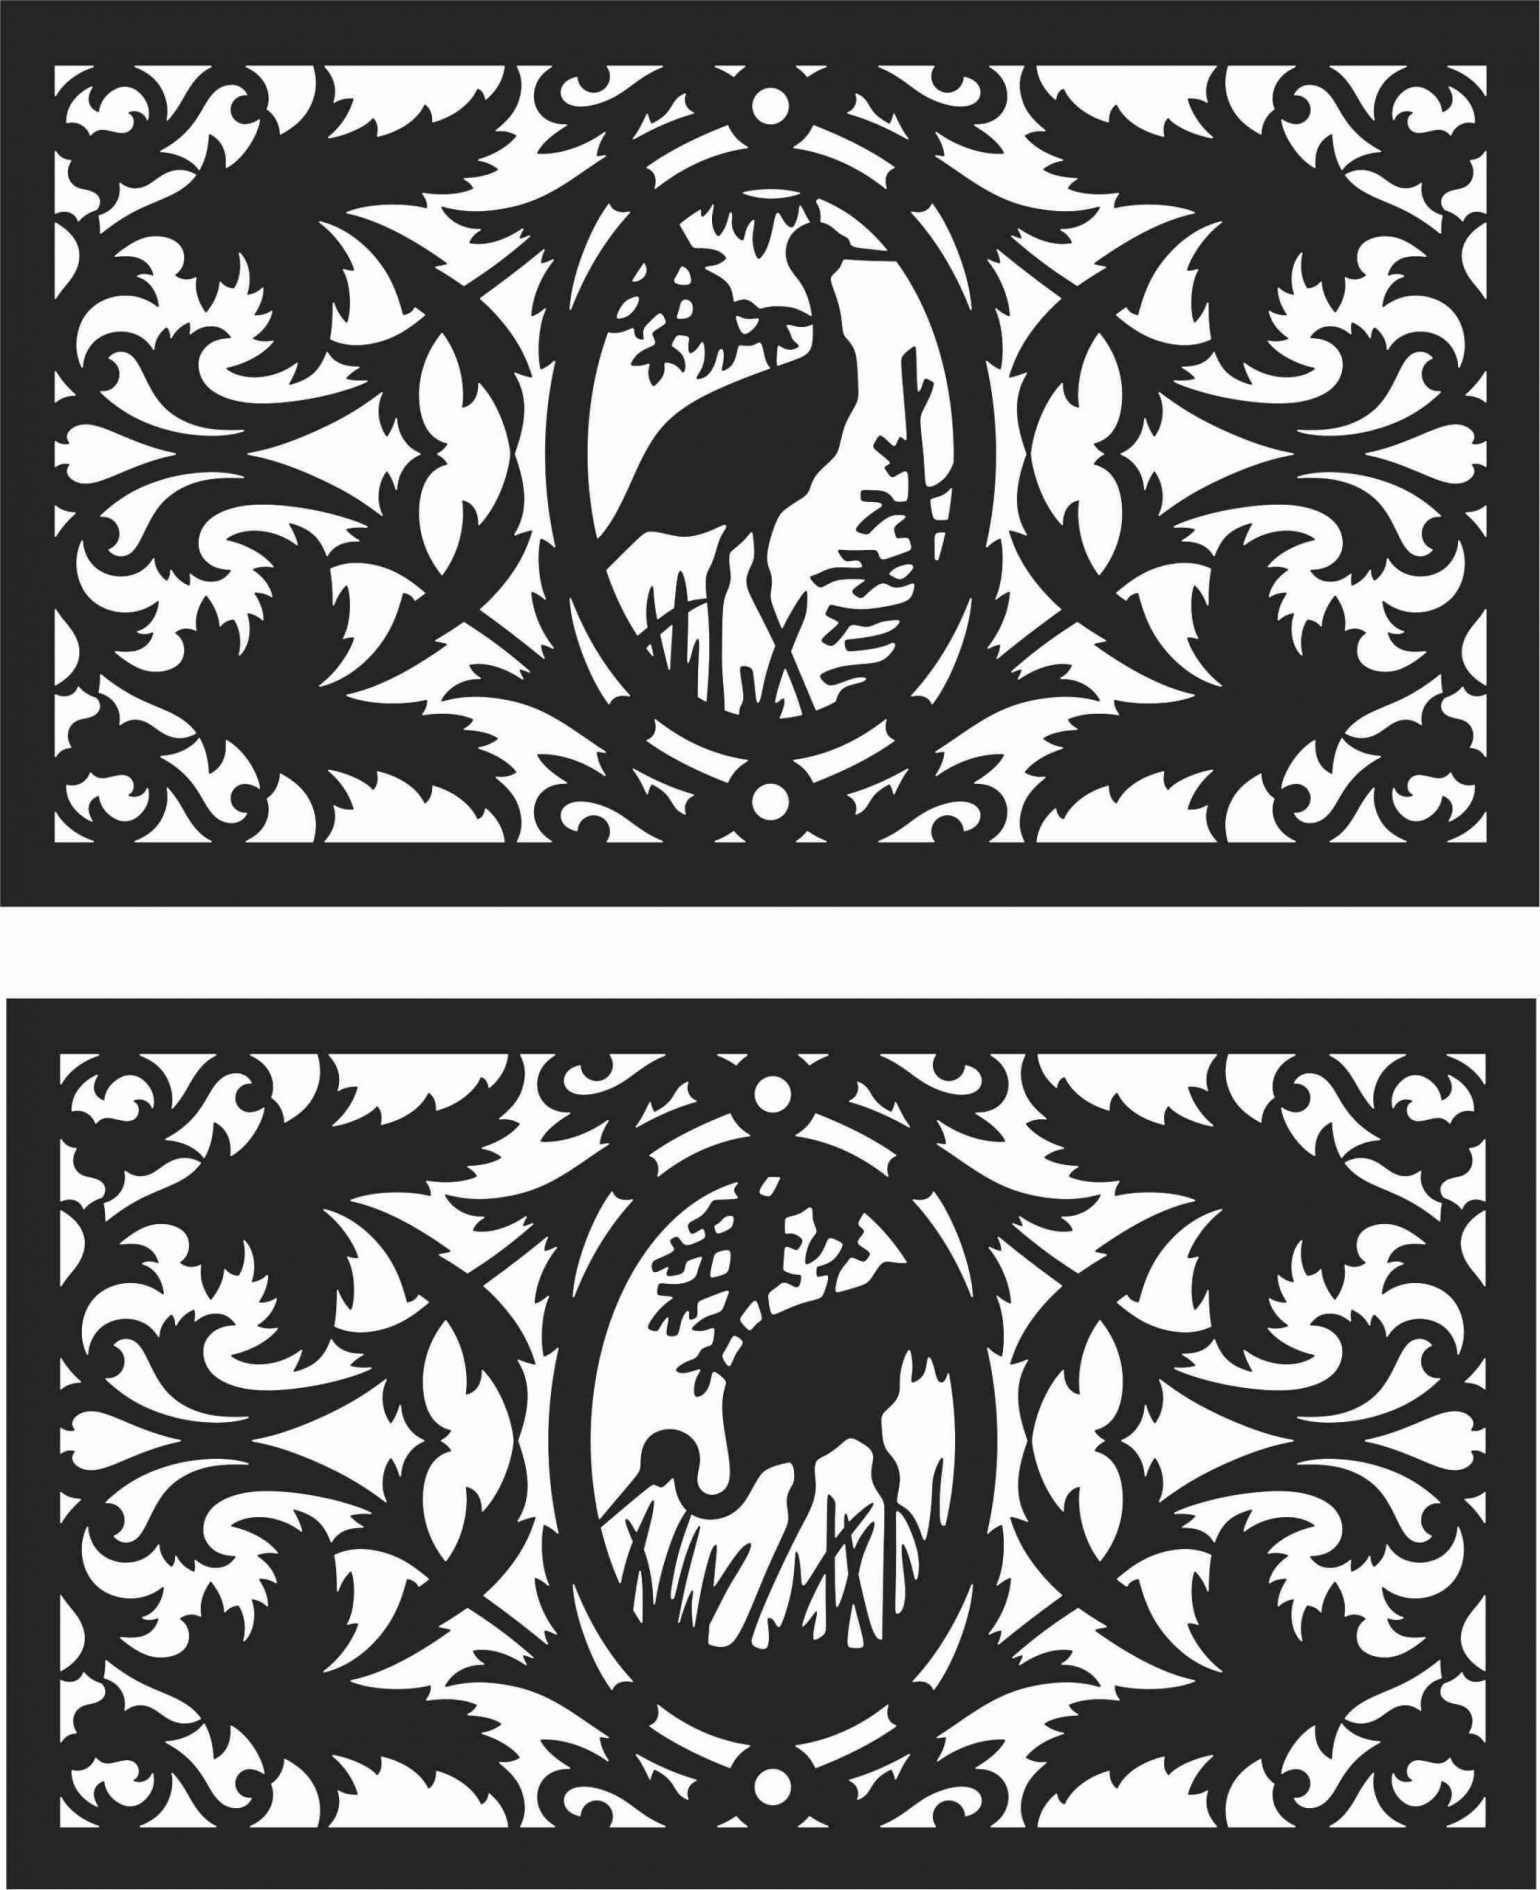 Decorative Screen Patterns For Laser Cutting 120 Free DXF File